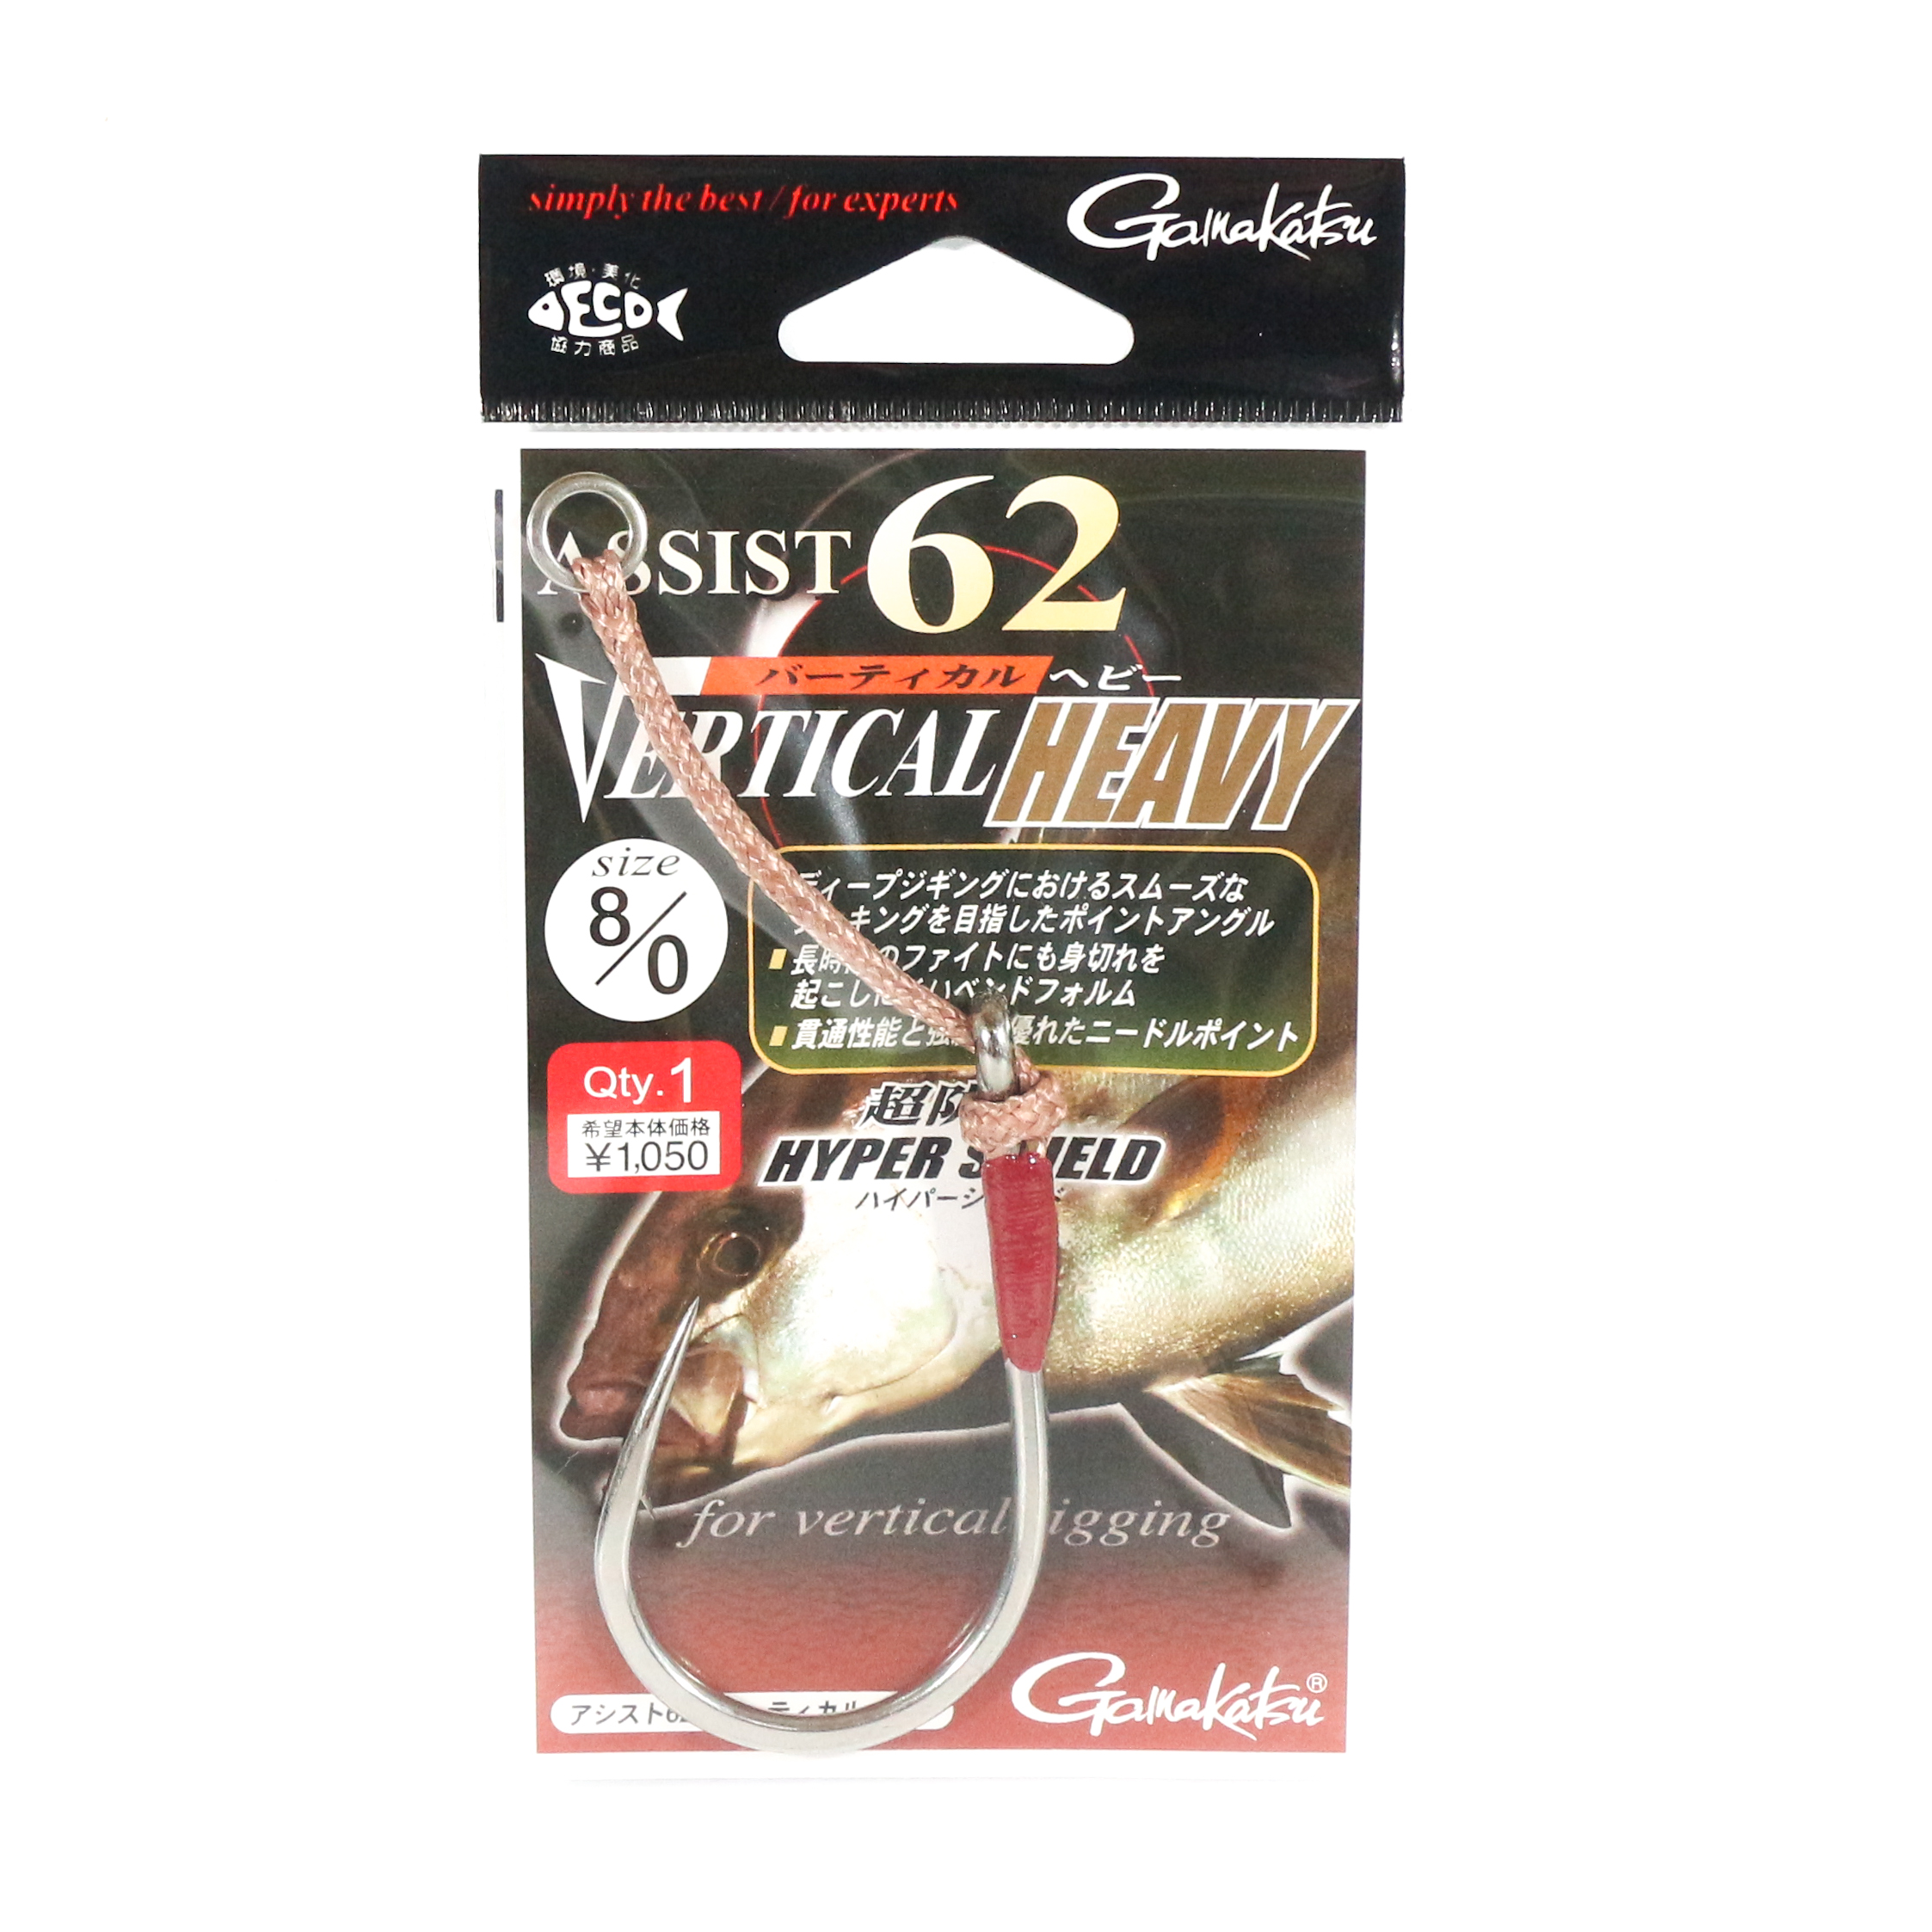 Sale Gamakatsu Assist 62 Vertical Heavy Jigging Hook Size 8/0 (8959)